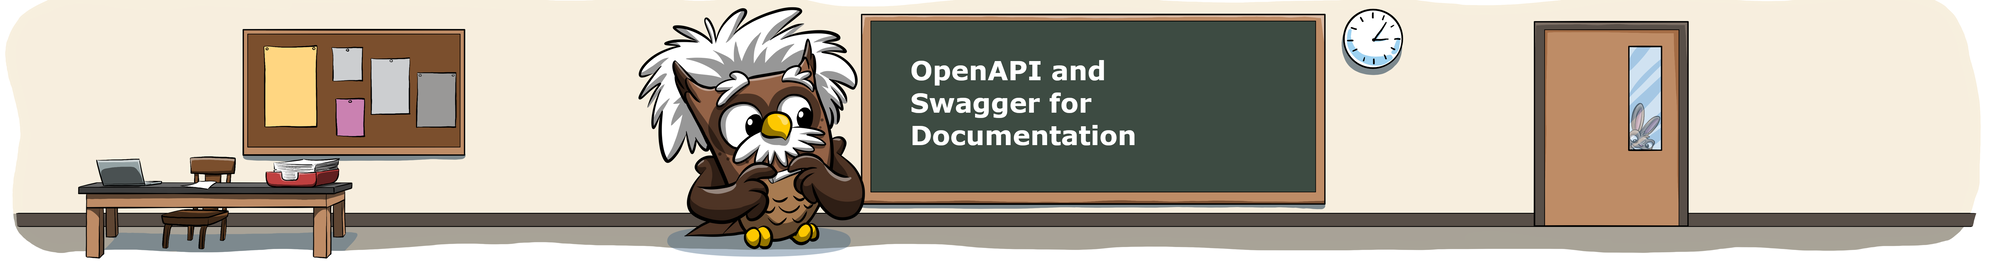 Tips for writing help documentation